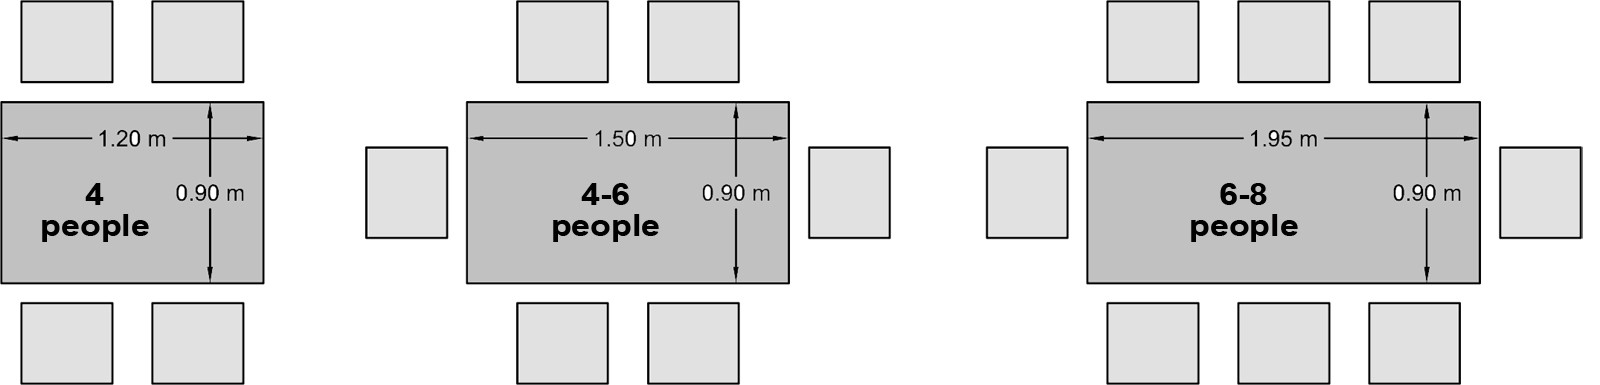 Best ideas about Dining Table Sizes . Save or Pin Dining table dimensions measurements Now.